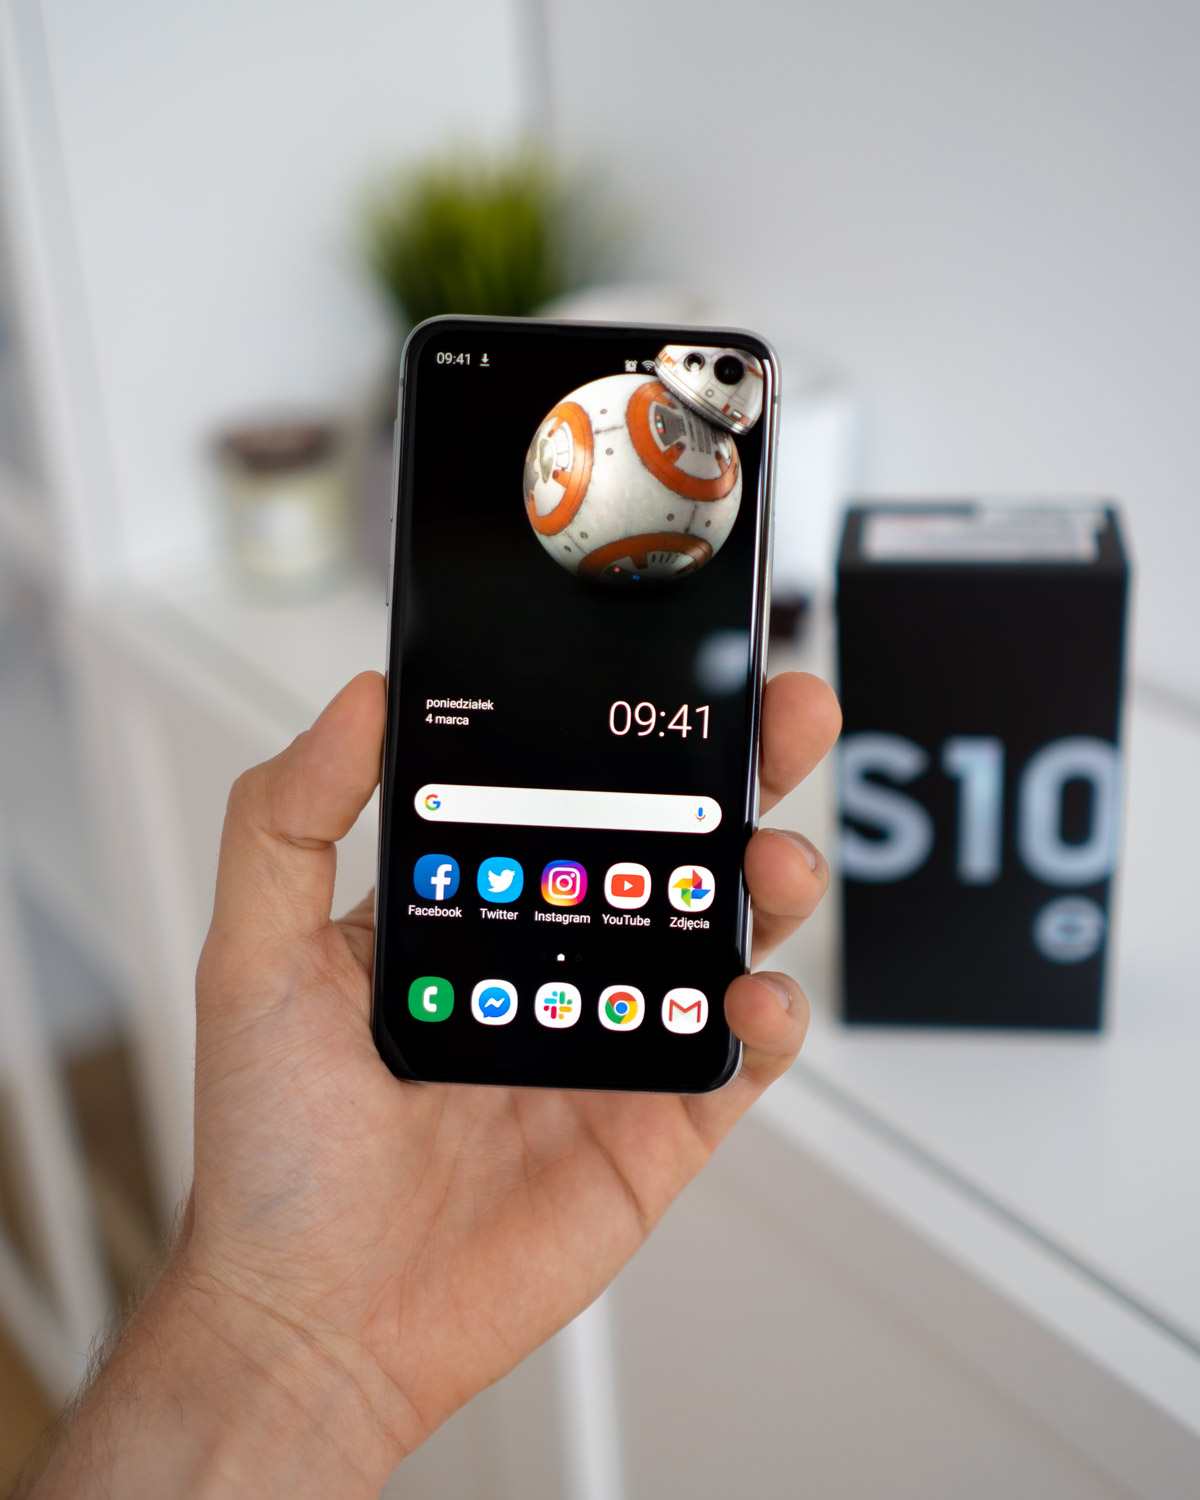 Have You Already Seen The Master Wallpaper On Samsung Galaxy S10